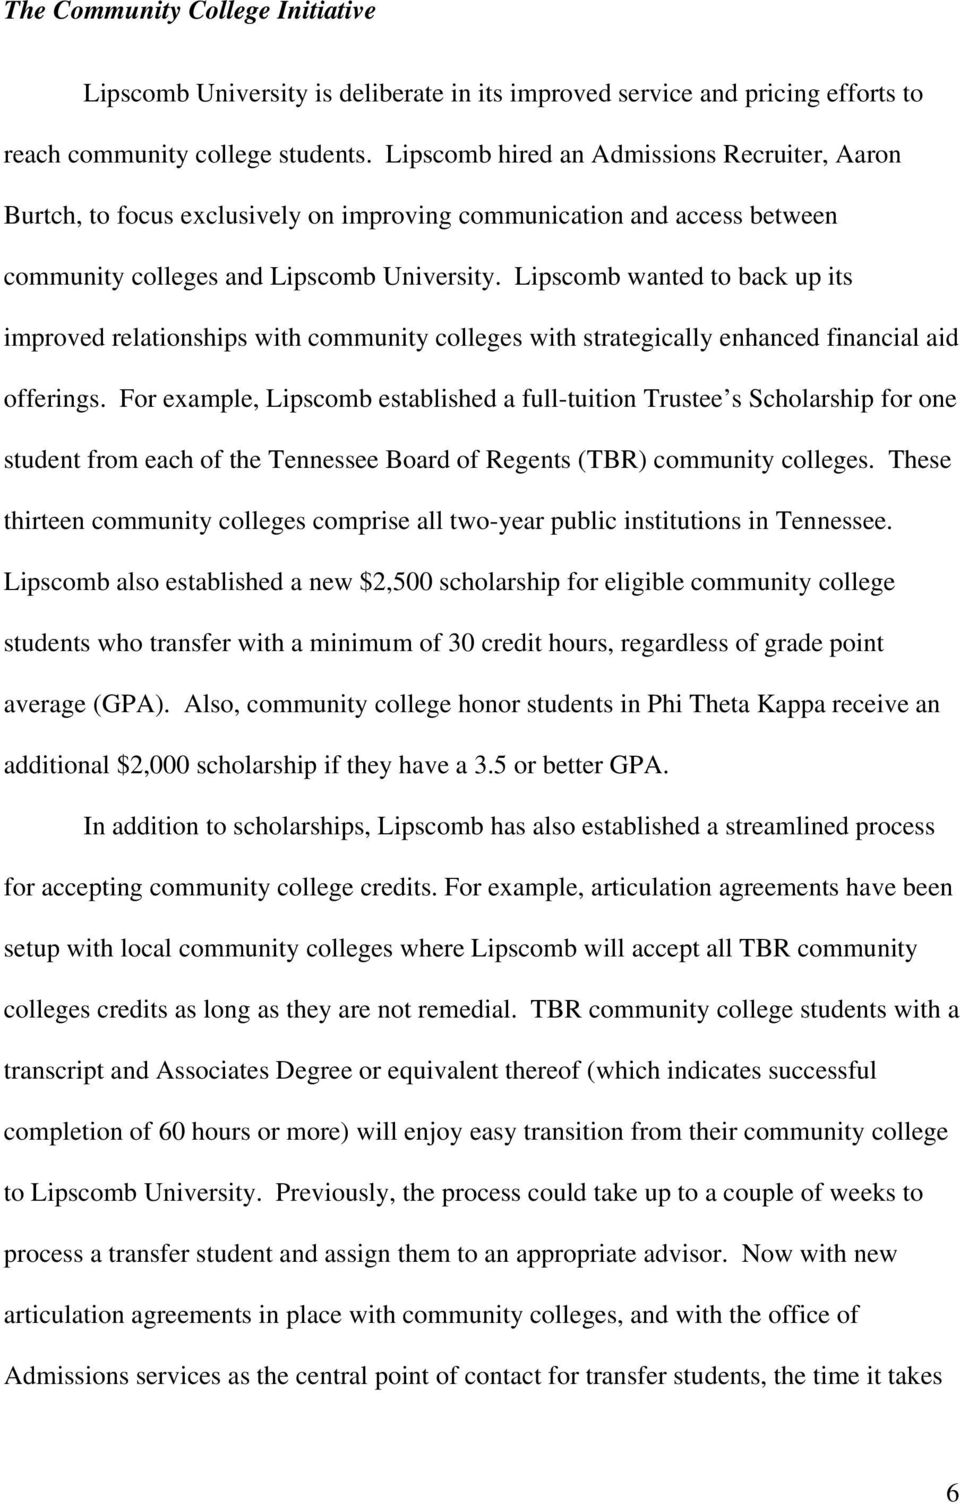 Lipscomb wanted to back up its improved relationships with community colleges with strategically enhanced financial aid offerings.